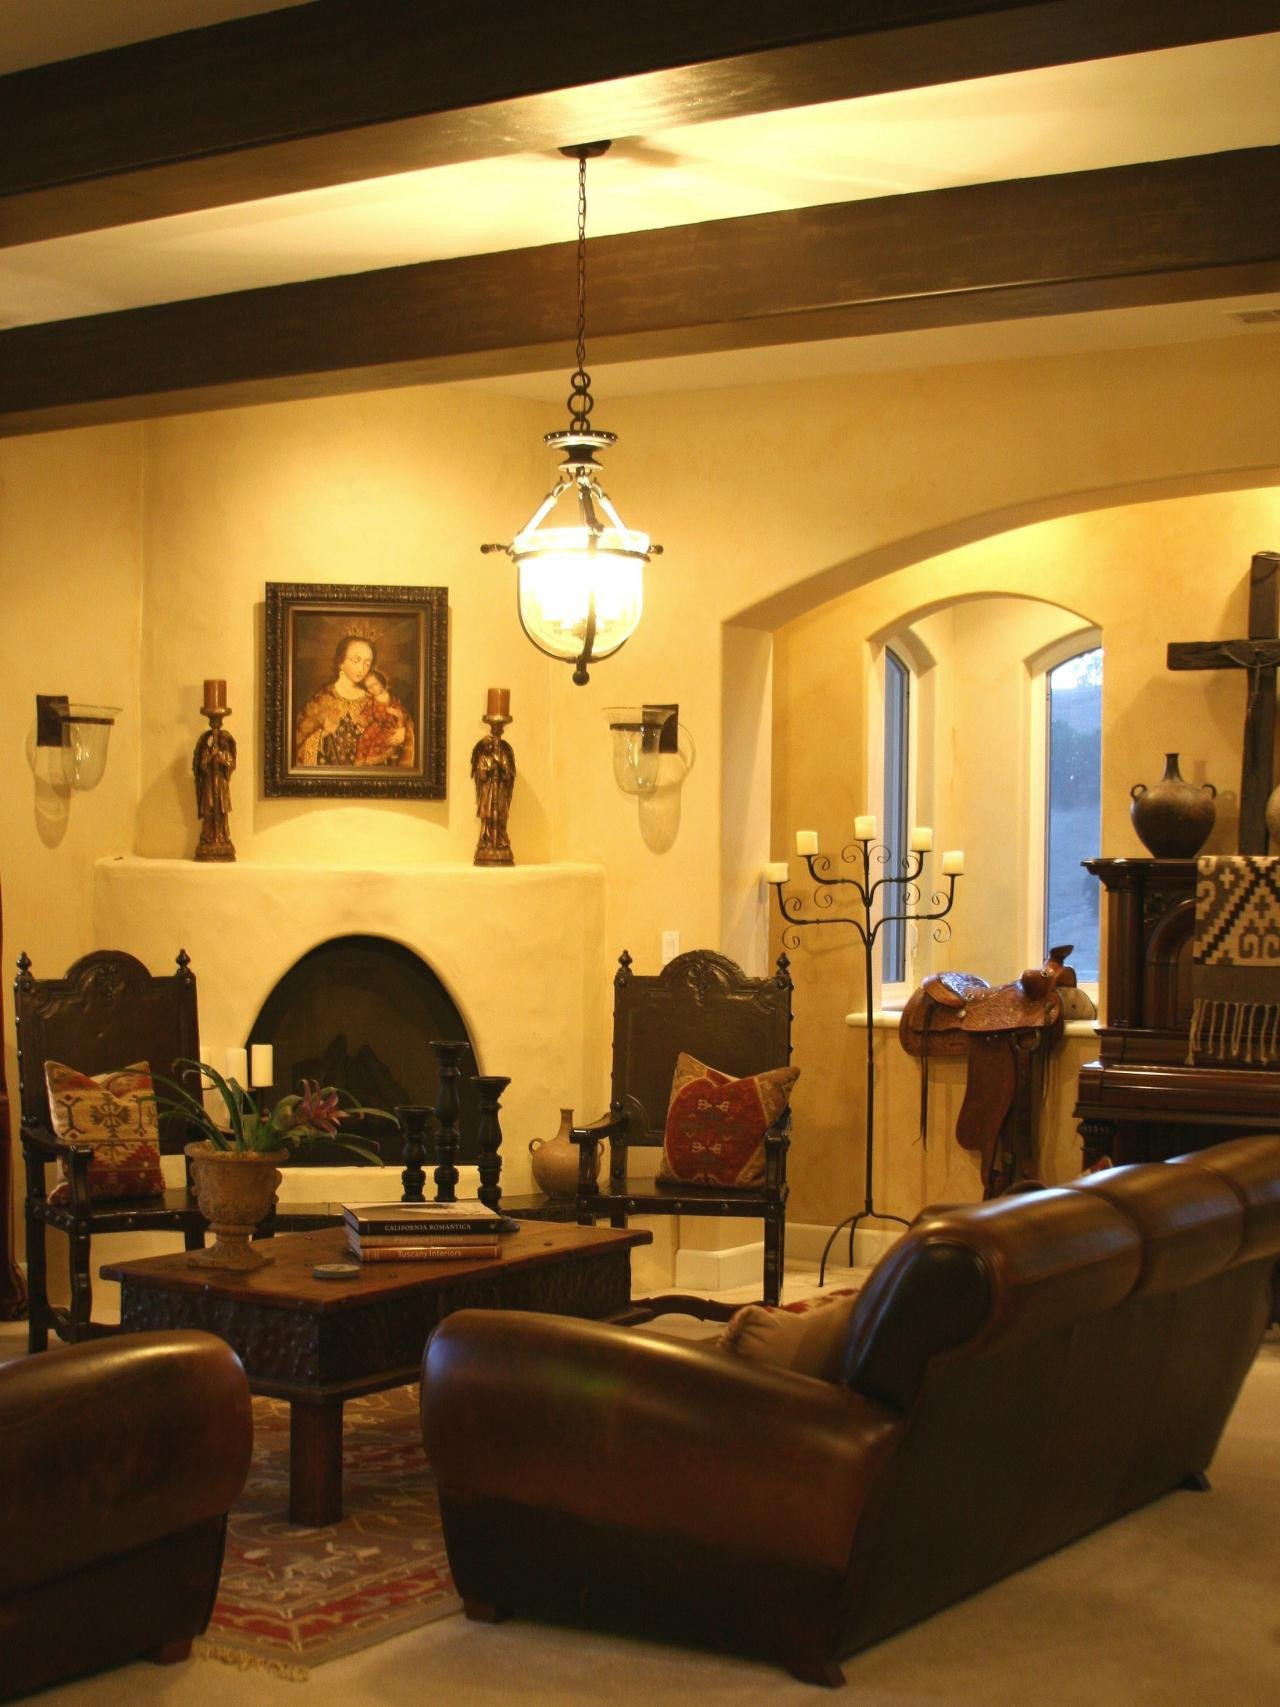 Old World Design Ideas Interior Design Styles and Color Schemes for Home Decorating